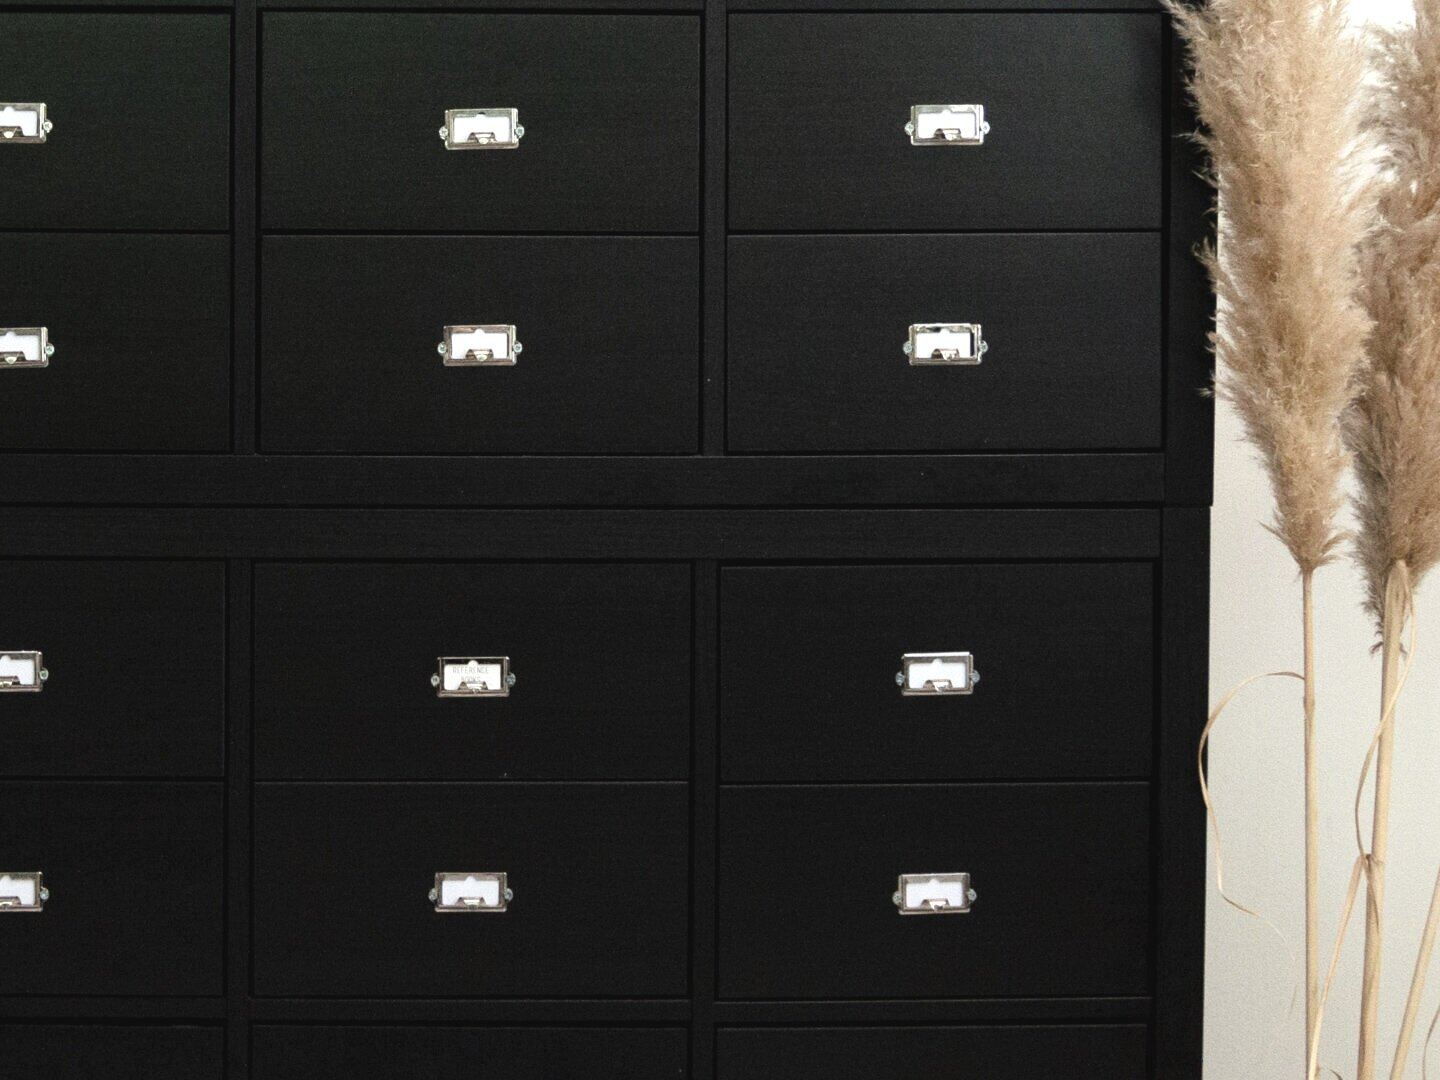 DIY Ikea hack with 32 drawers - library card catalog inspired by the savvy heart